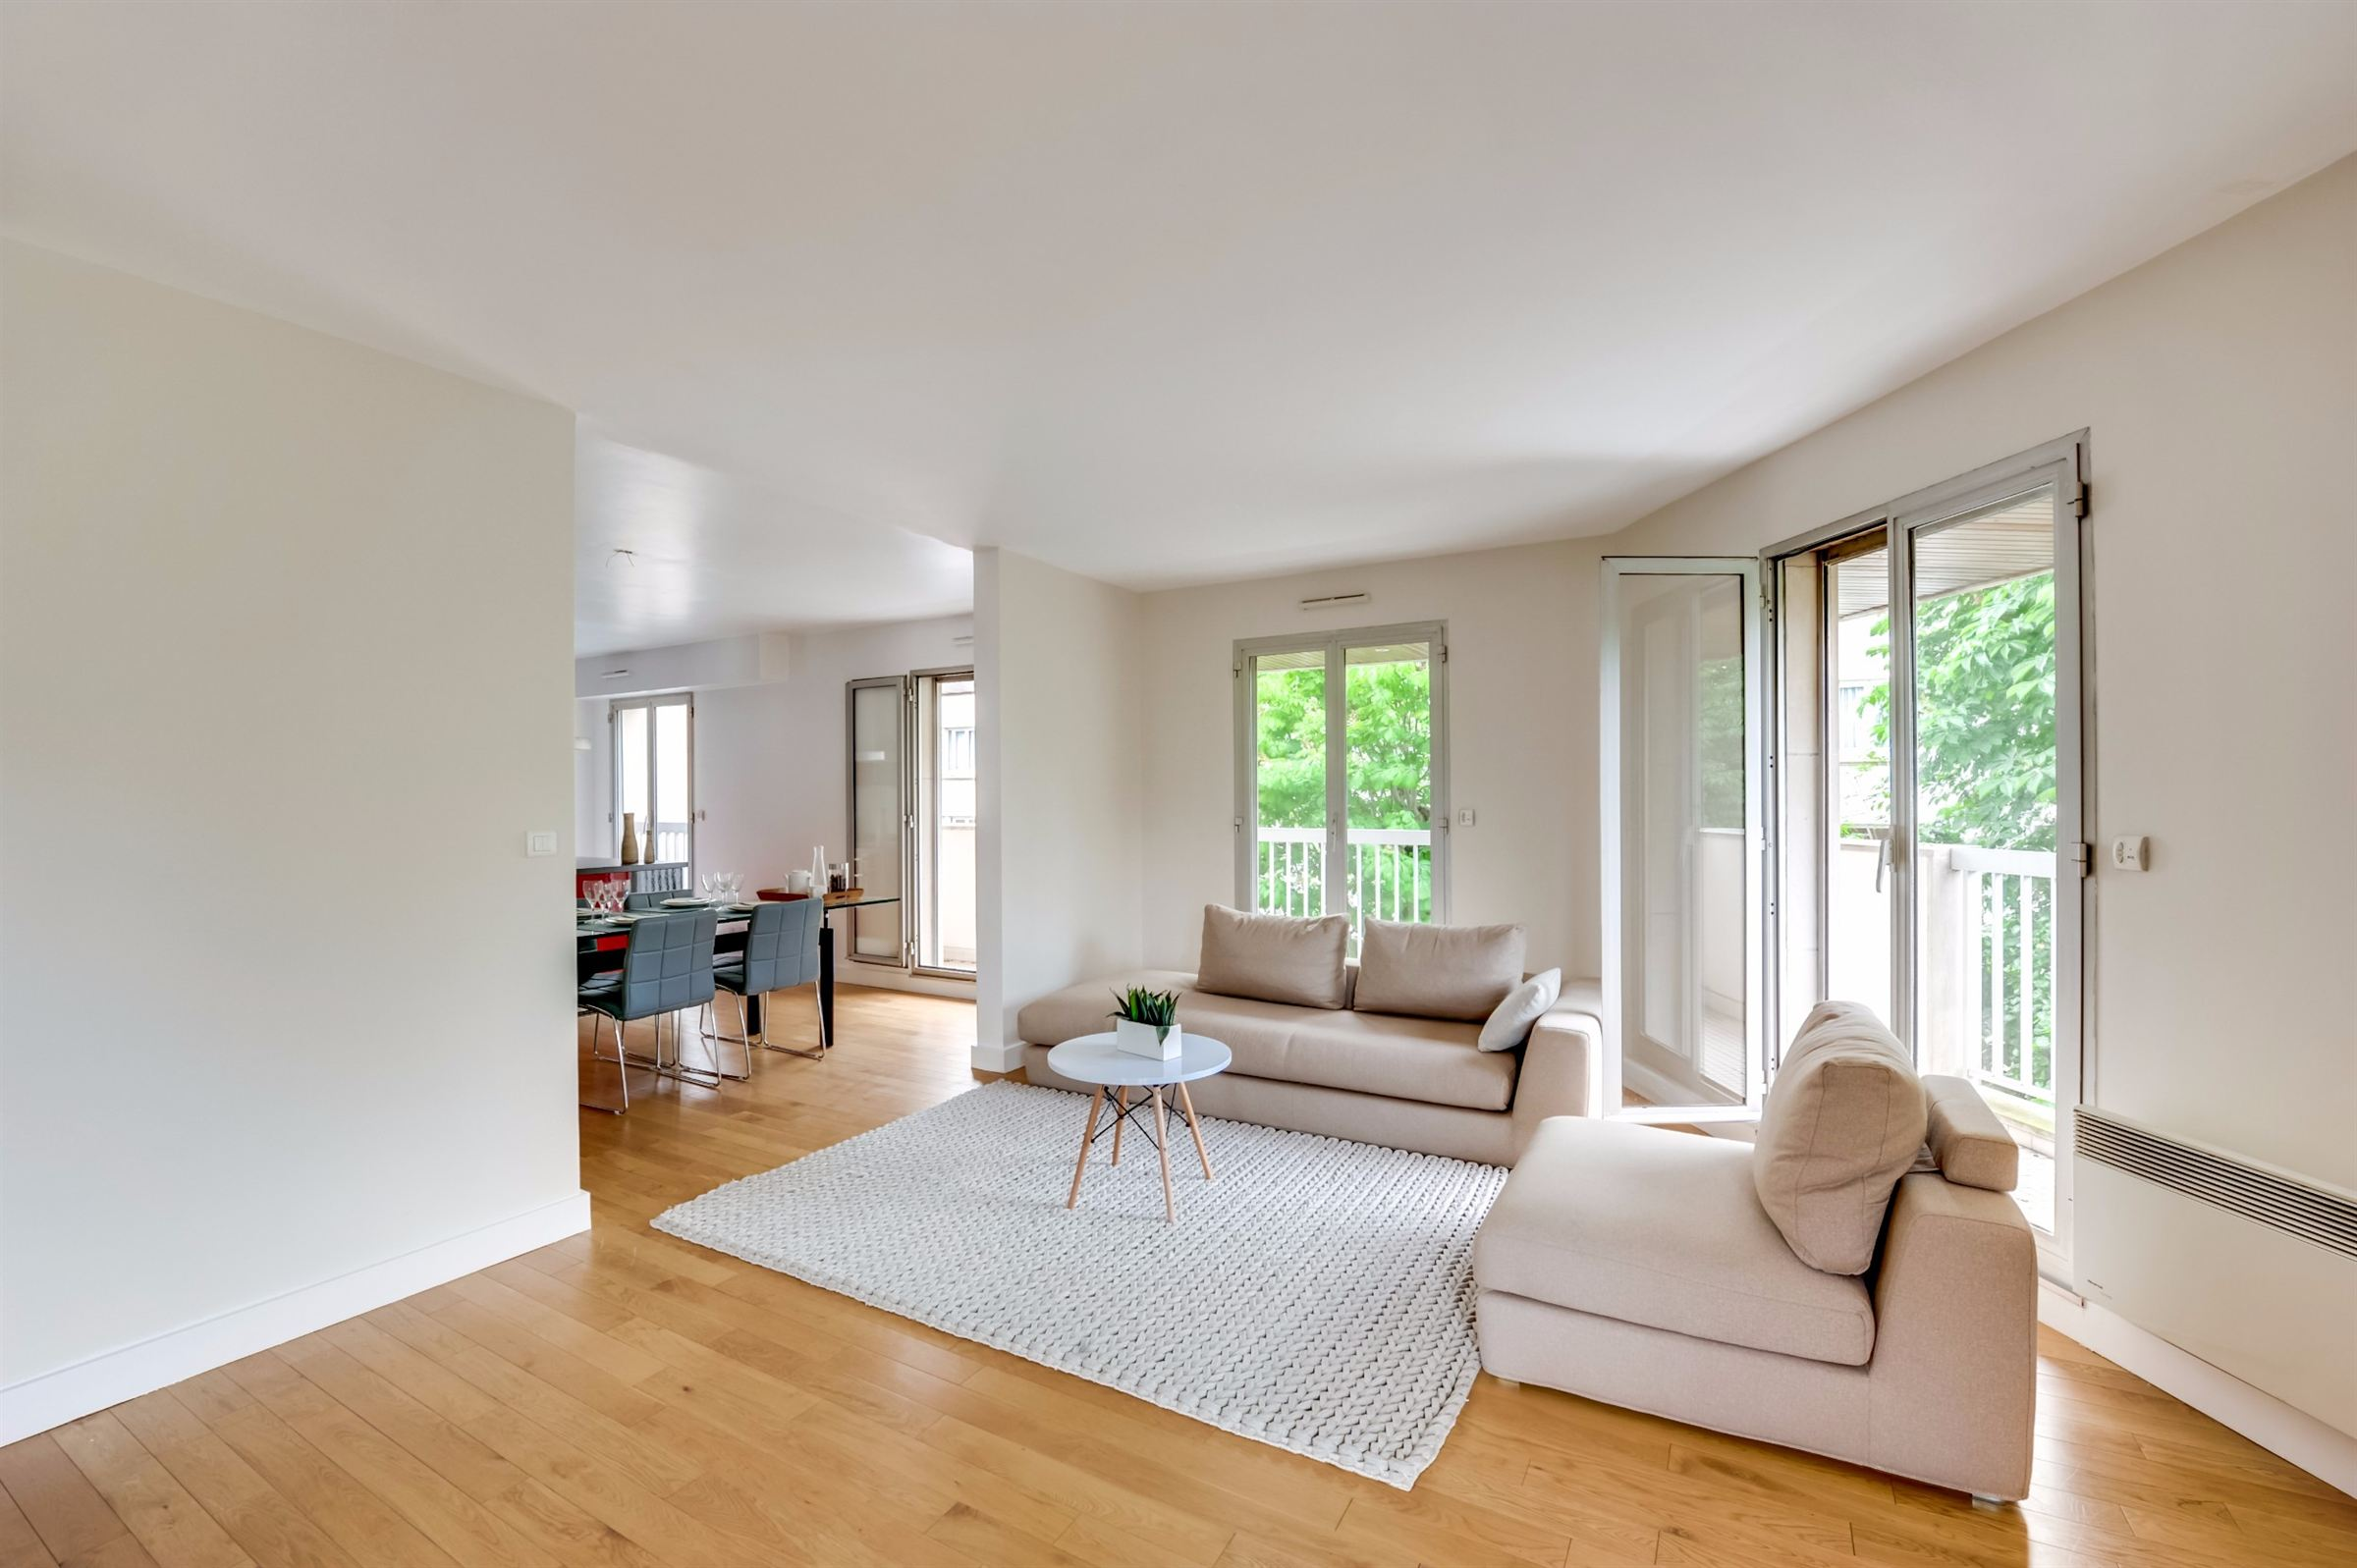 sales property at A 158 sq.m apartment for sale, renovated, Neuilly - Saint James, 3/4 bedrooms